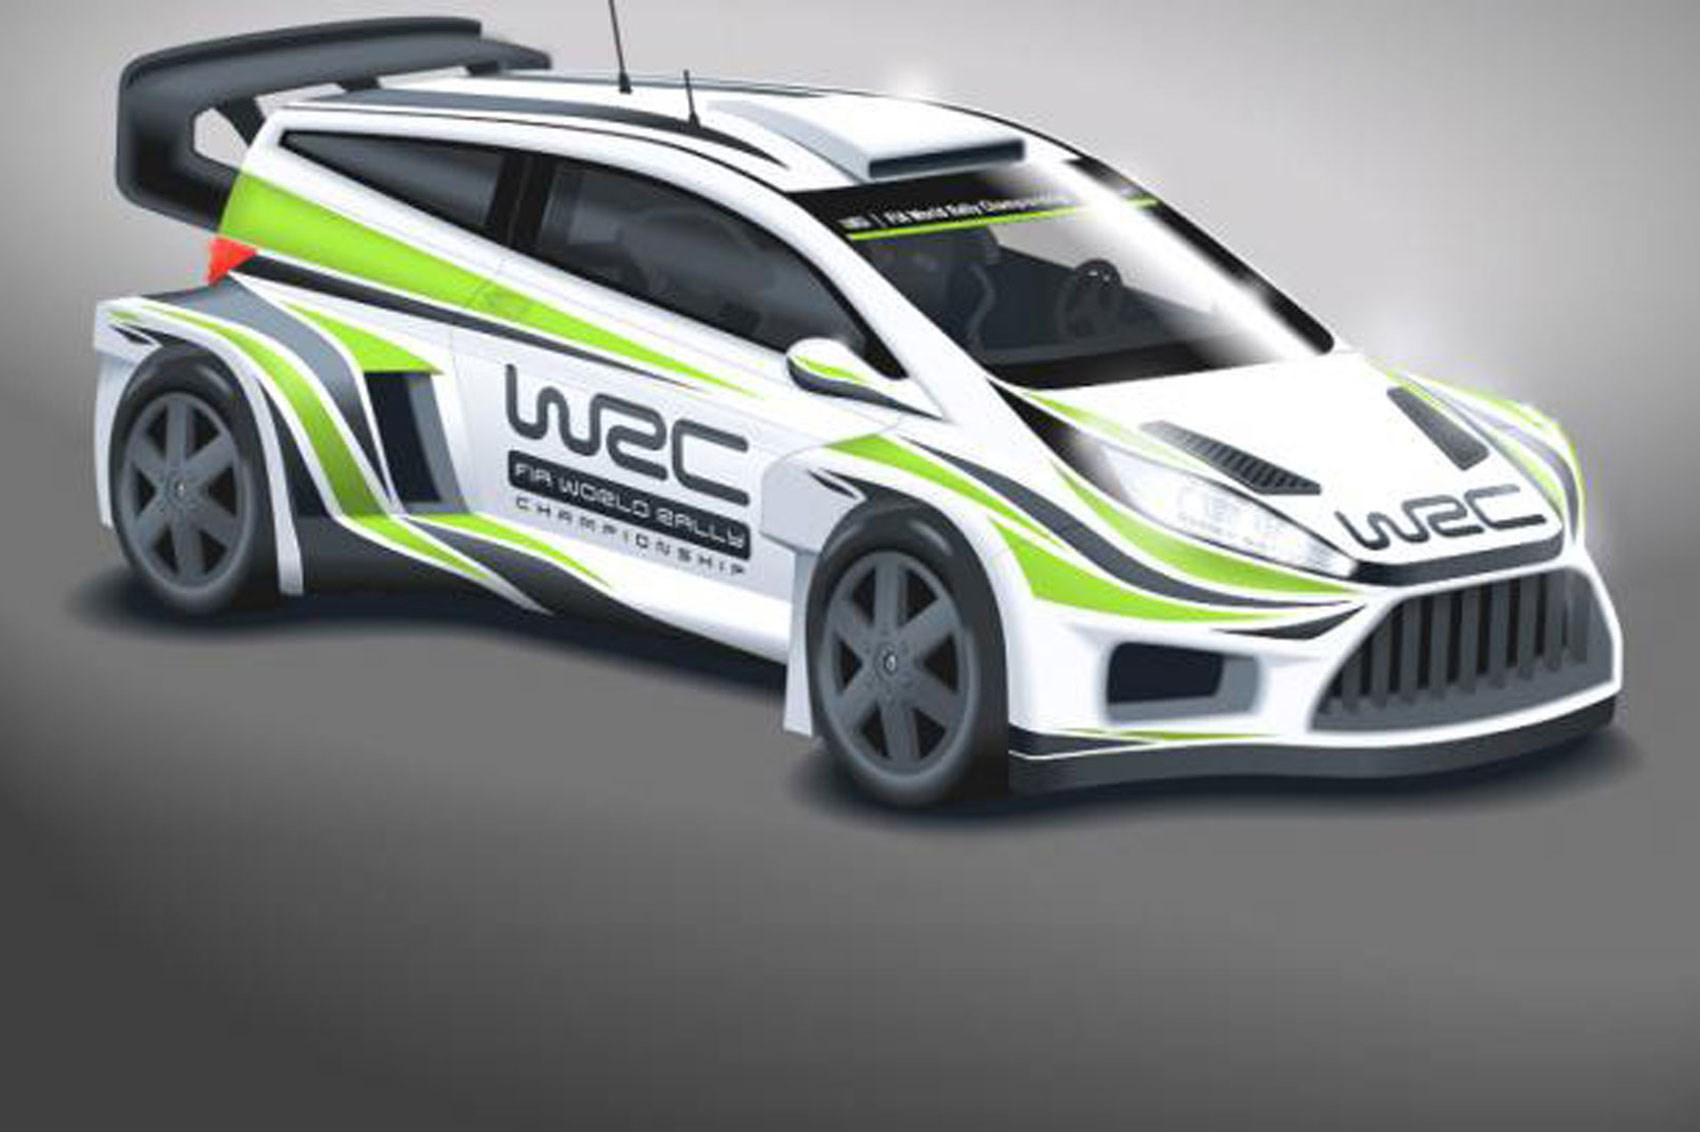 Ultrablogus  Winsome Wild New Look For Wrc Cars In  By Car Magazine With Inspiring Wrc Cars Will Get Wider Bodies Bigger Wings And More Power For  With Lovely  Supra Interior Also  Chevy Interior In Addition Jeep Wrangler  Interior And Nissan Maxima  Interior As Well As Hyundai Genesis Interior Additionally Lamborghini Countach Interior From Carmagazinecouk With Ultrablogus  Inspiring Wild New Look For Wrc Cars In  By Car Magazine With Lovely Wrc Cars Will Get Wider Bodies Bigger Wings And More Power For  And Winsome  Supra Interior Also  Chevy Interior In Addition Jeep Wrangler  Interior From Carmagazinecouk